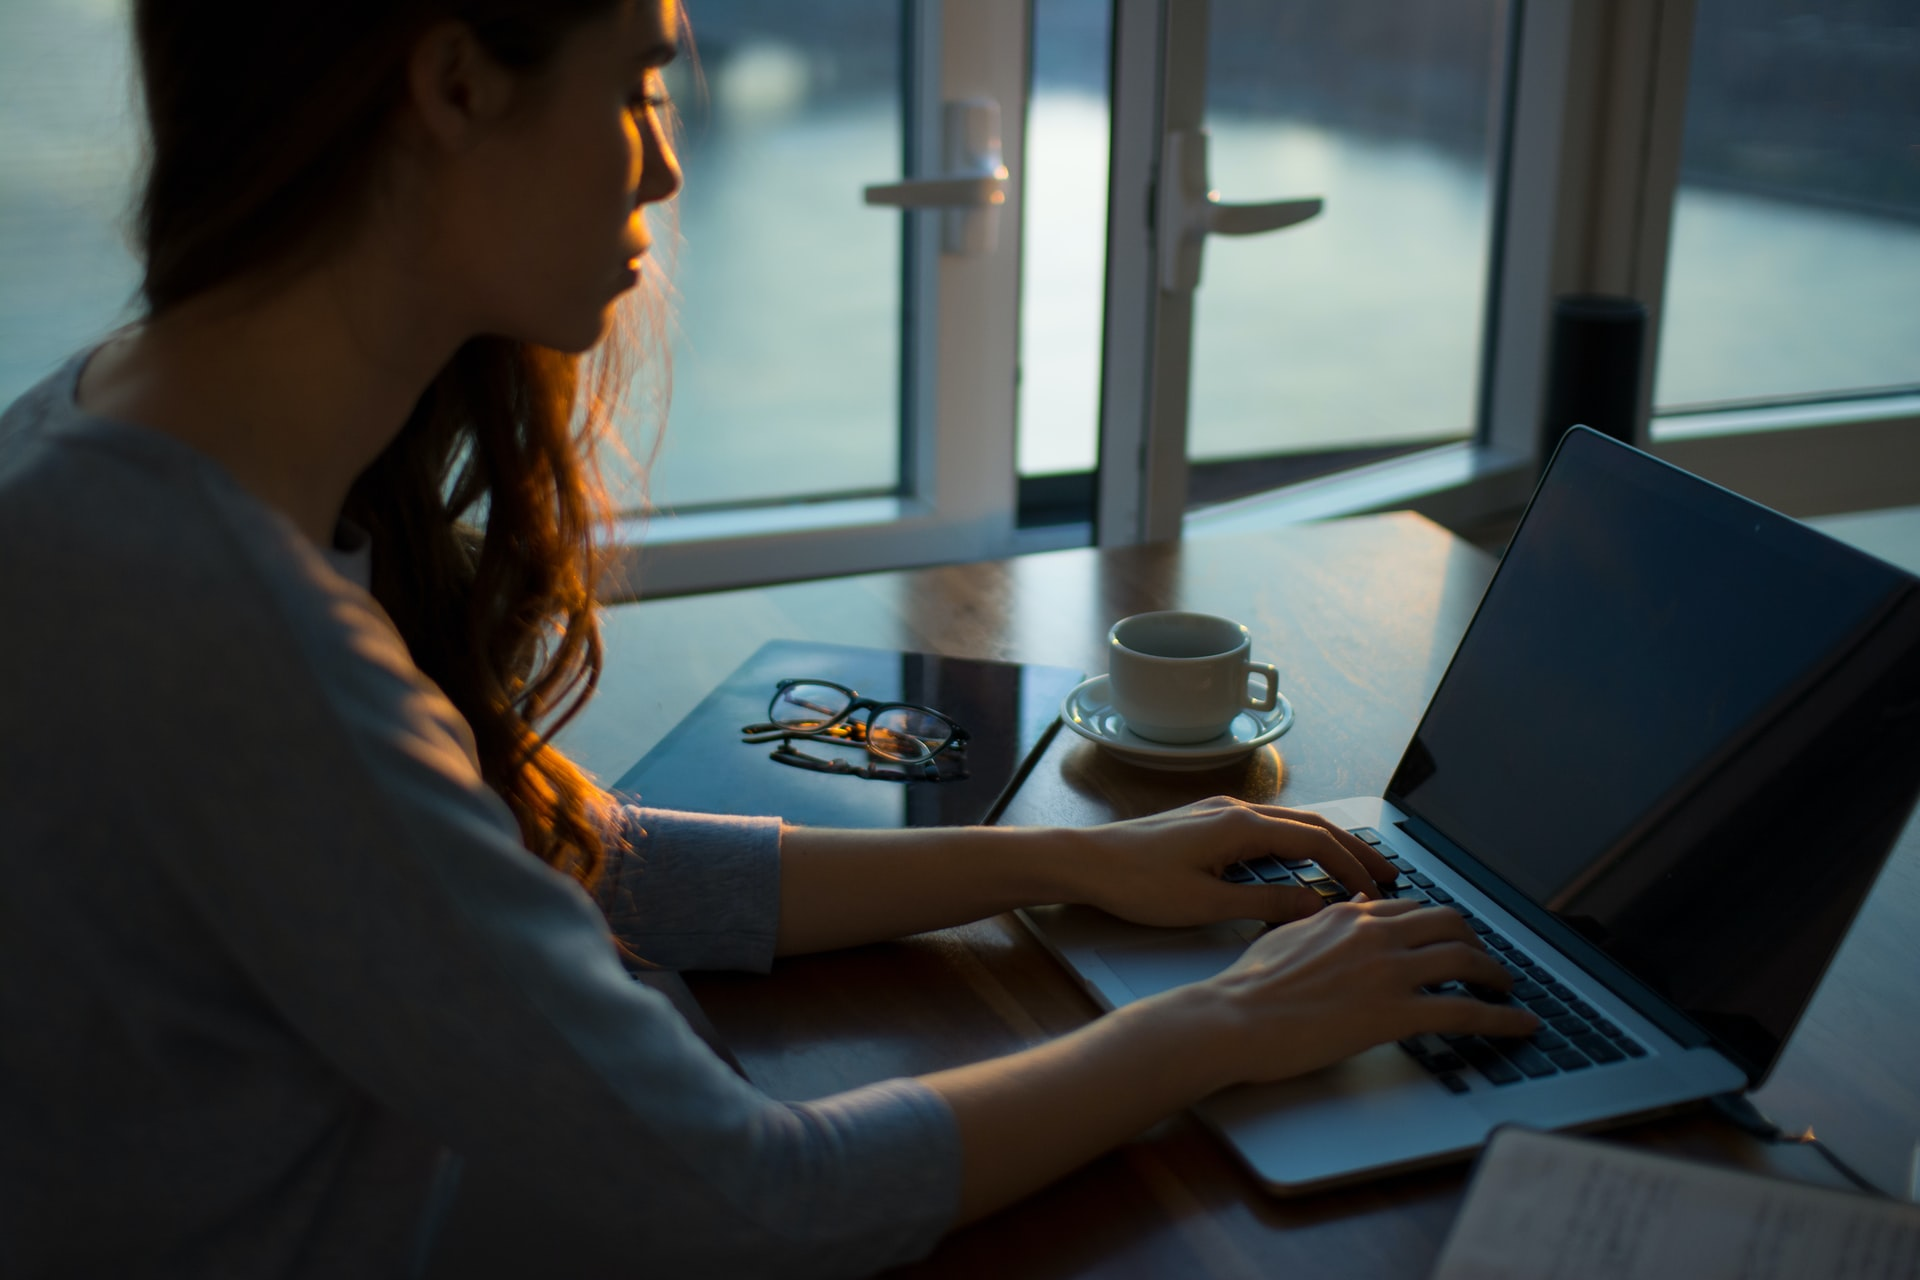 The DEN: Has working from home made the goal of gender equality in the workplace more difficult?